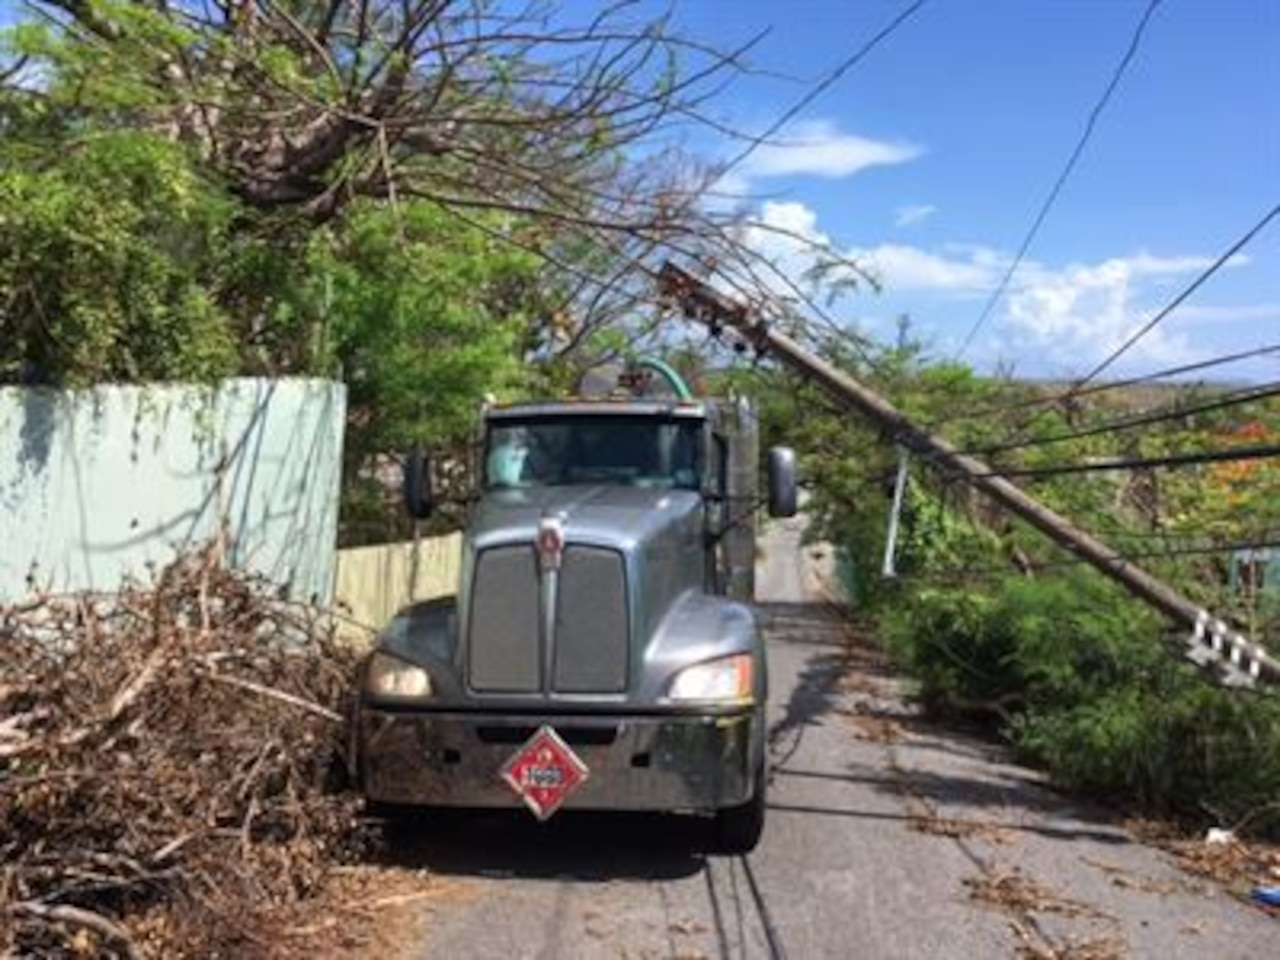 A fuel truck contracted by the Defense Logistics Agency makes its way through fallen electrical poles and downed trees in Puerto Rico.